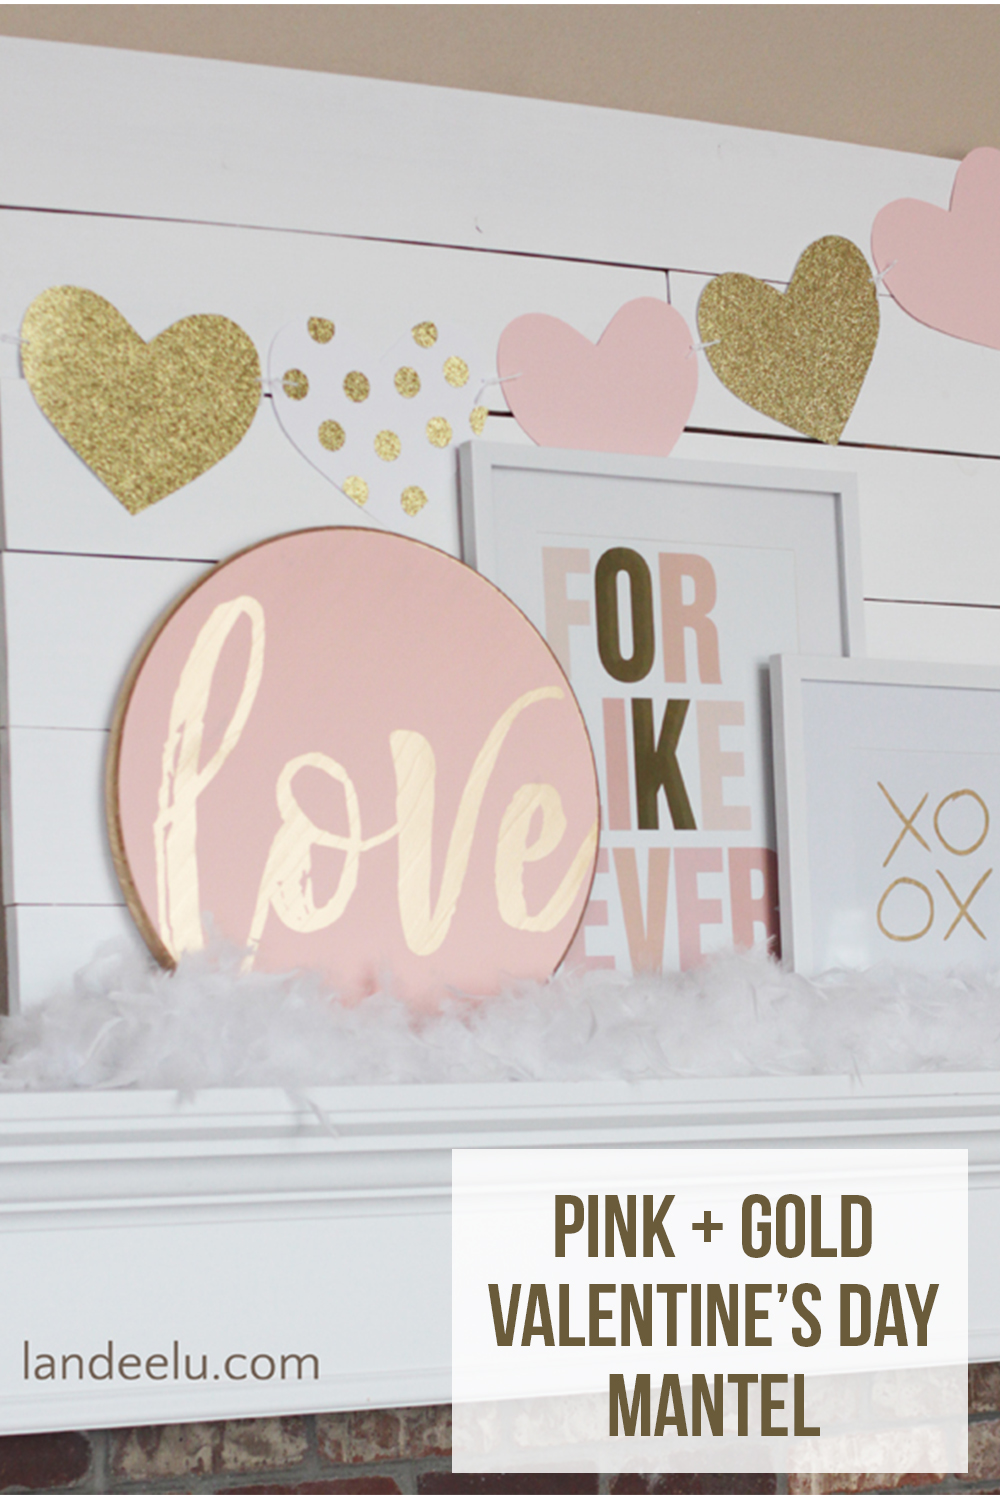 Pink and Gold Valentine's Day Mantel | landeelu.com Pretty blush pink, gold and white Valentine's Day mantel decorations! #valentinesdaymantel #pinkandgold #valentinesday #vdaydecor #valentinesdaydecor